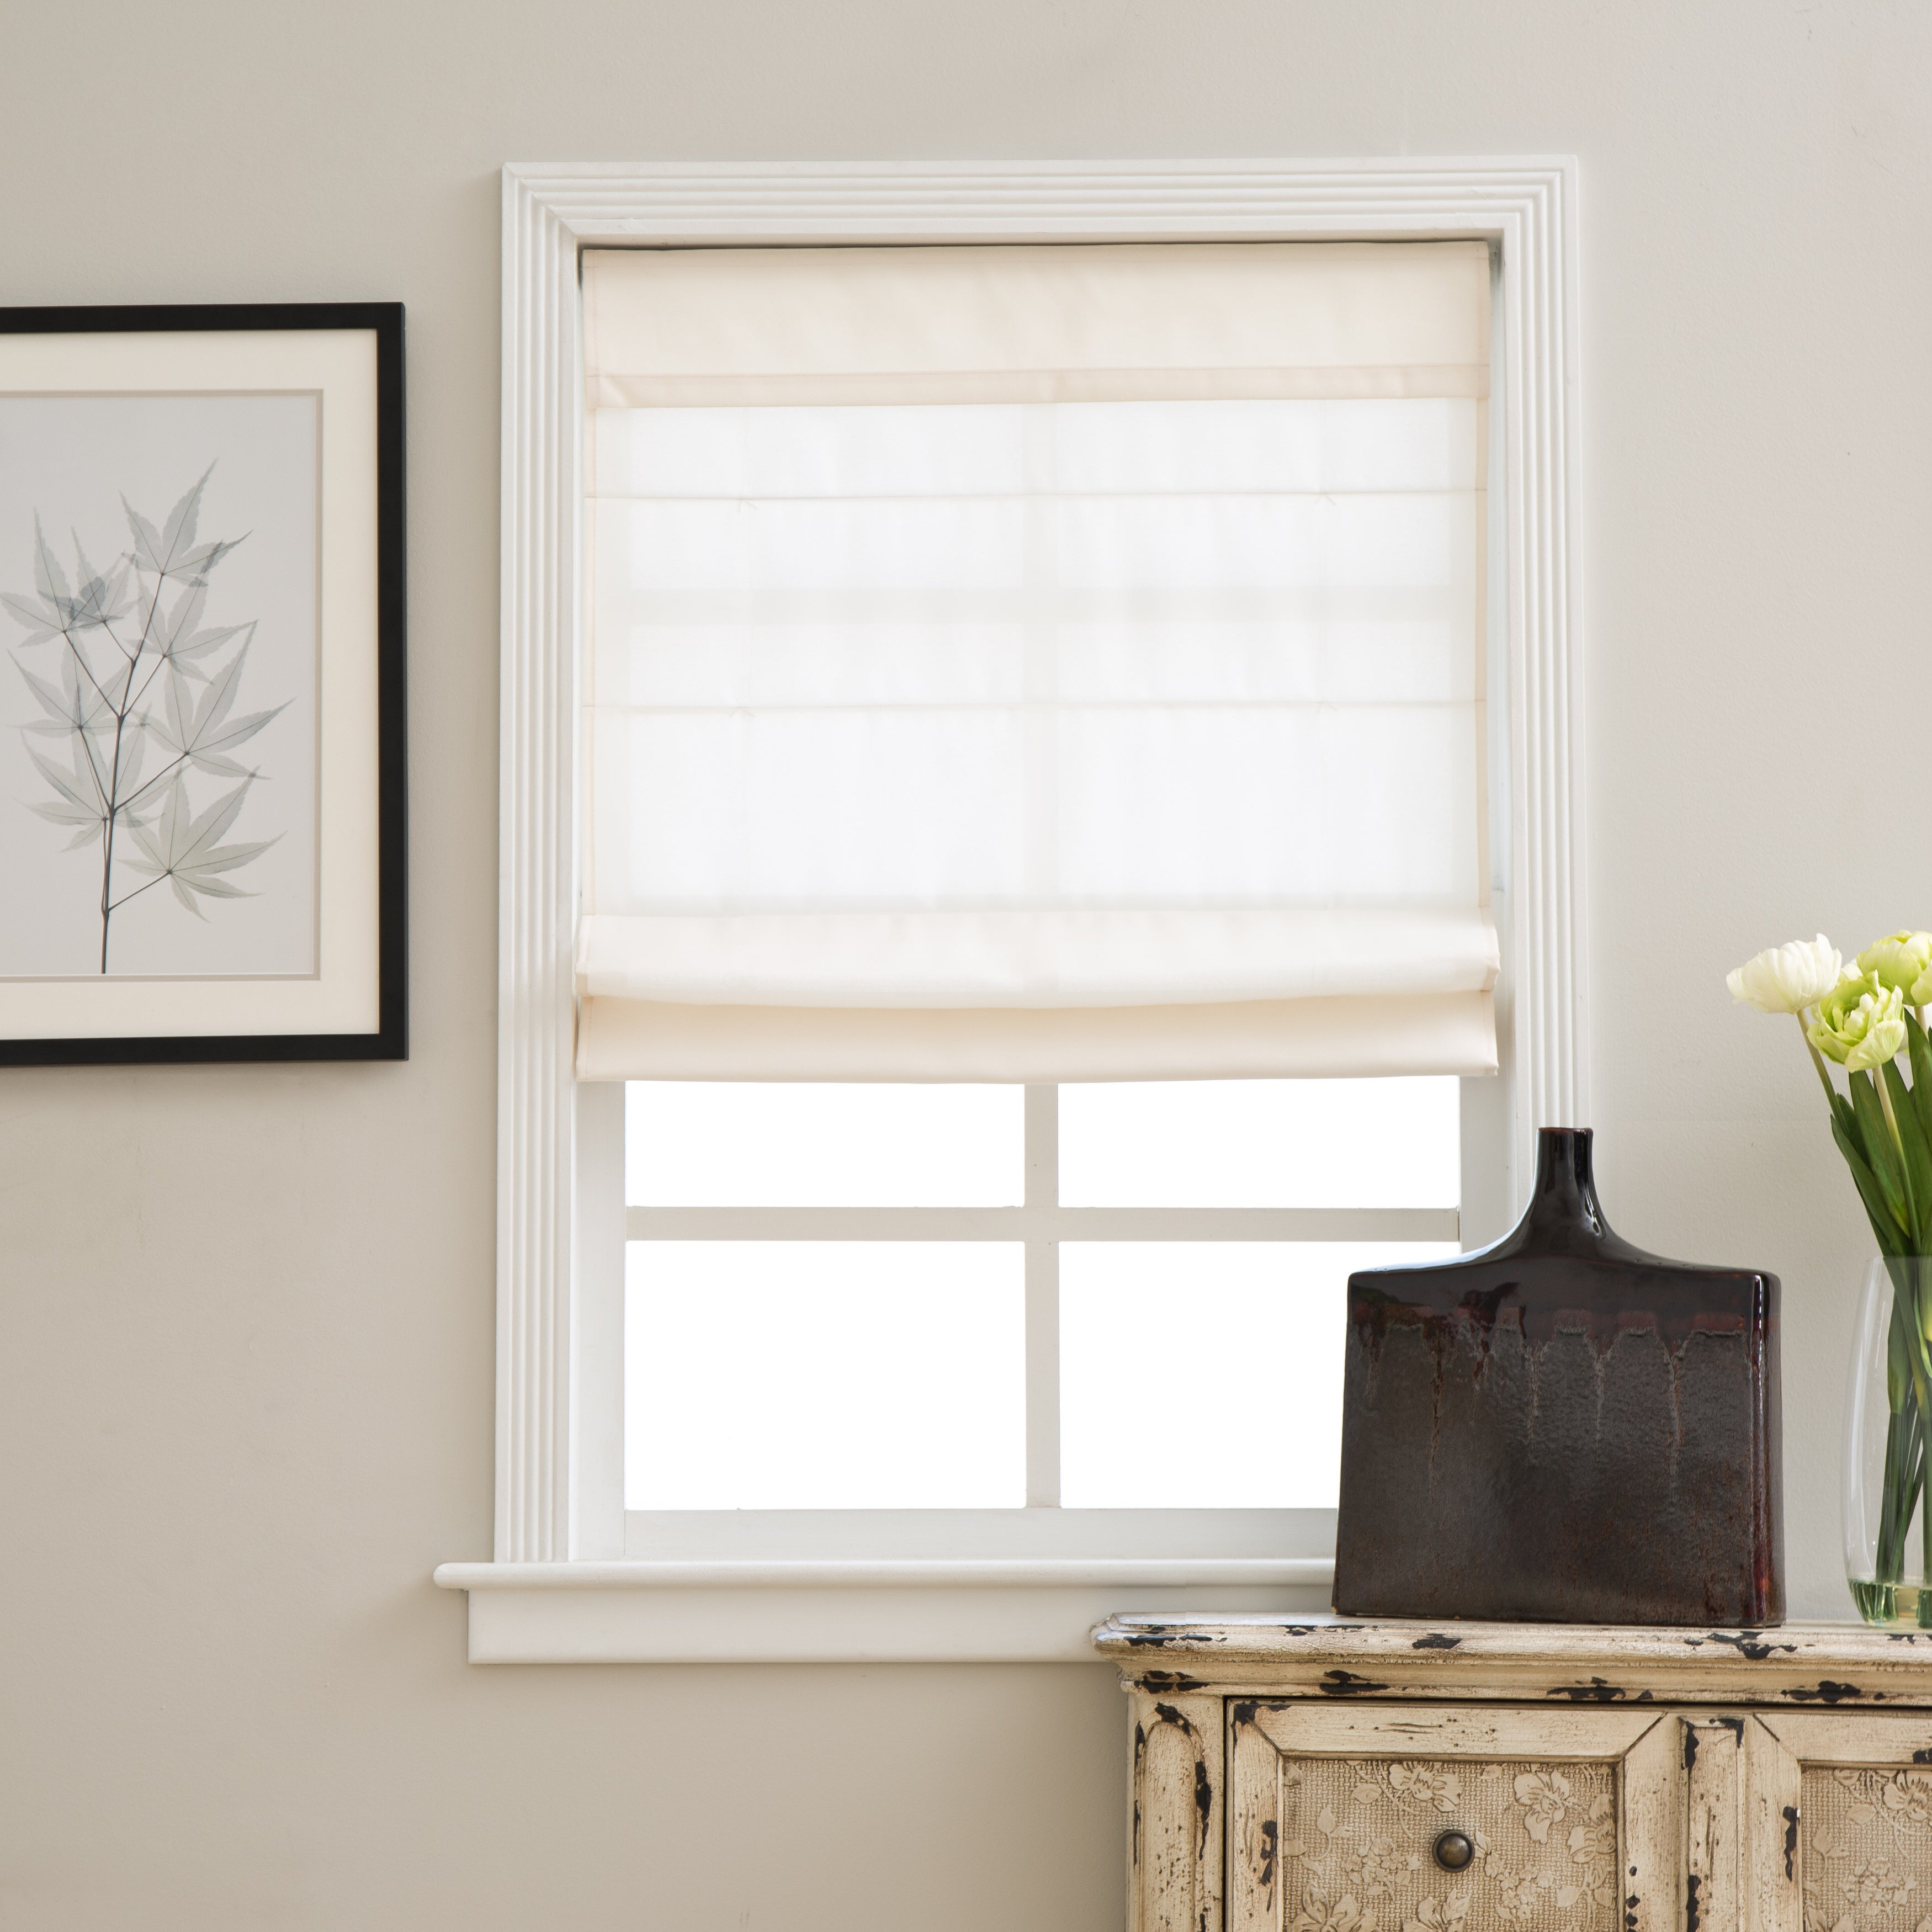 semi more curtains window com new ordered shabby that and blinds img lighter from a ikea put tailored treatment i bamboo cottage wanted up sweet overstock sheer so